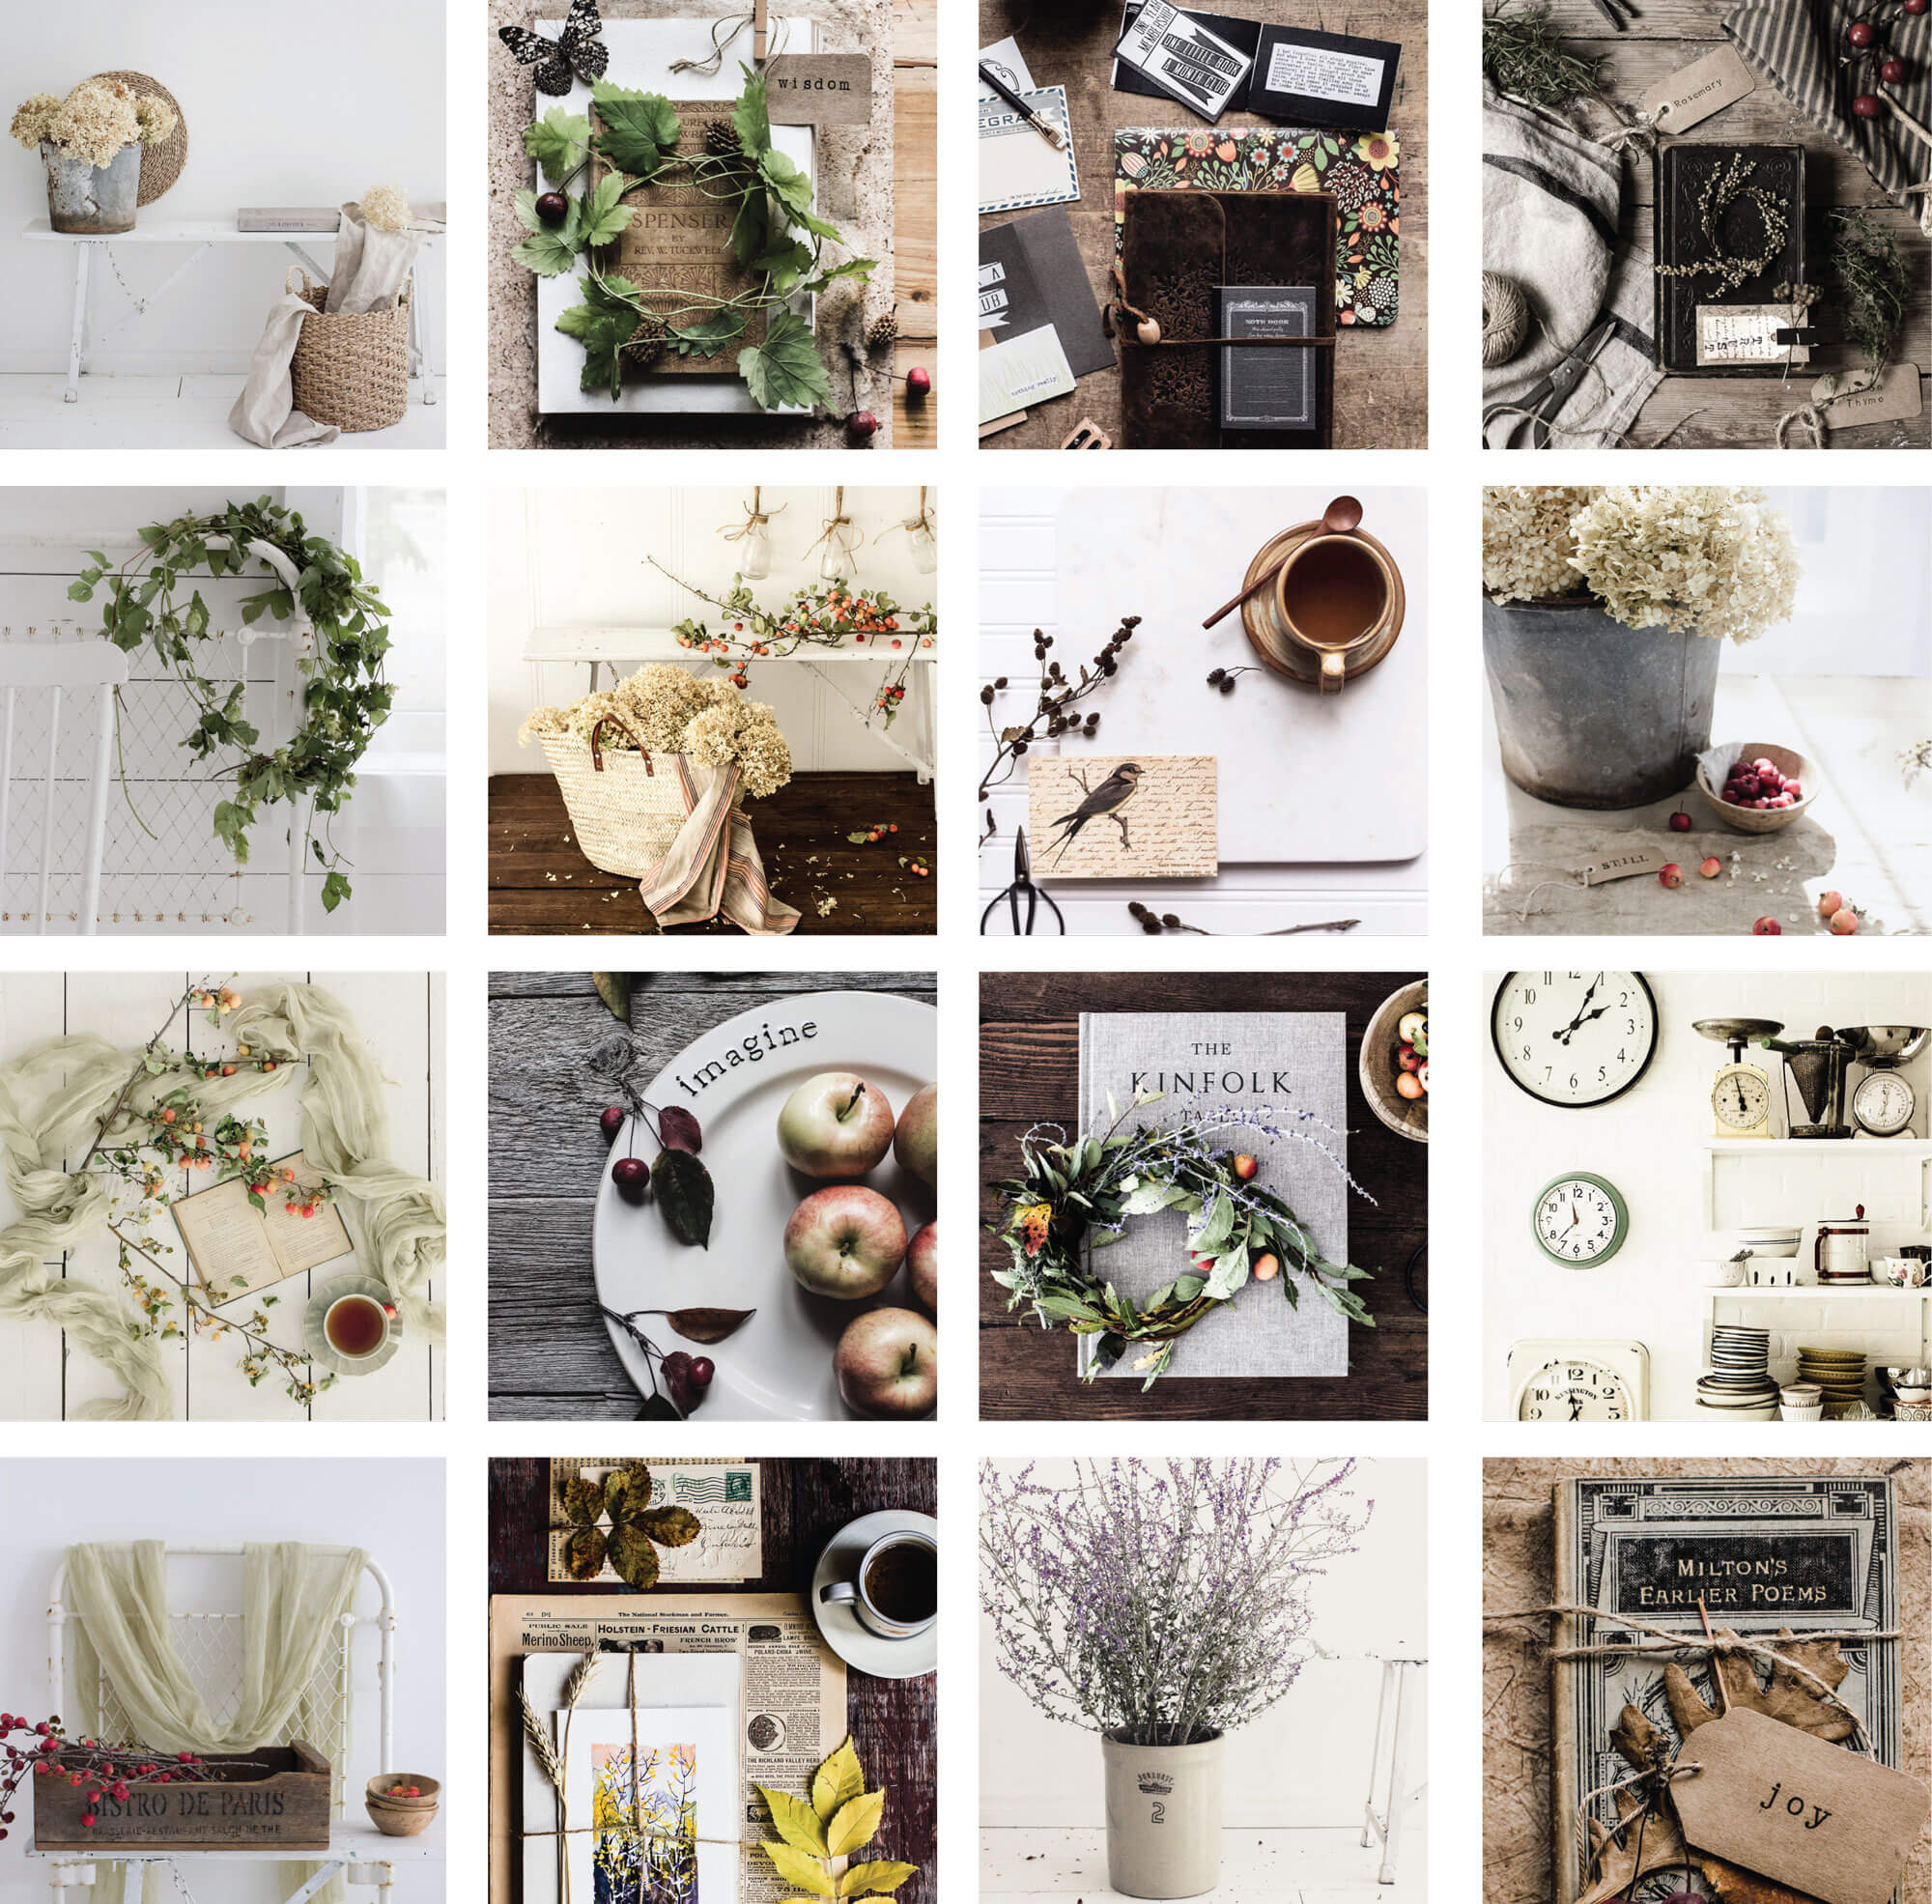 Inspired by Instagram: 5 Instagram Accounts We Love!